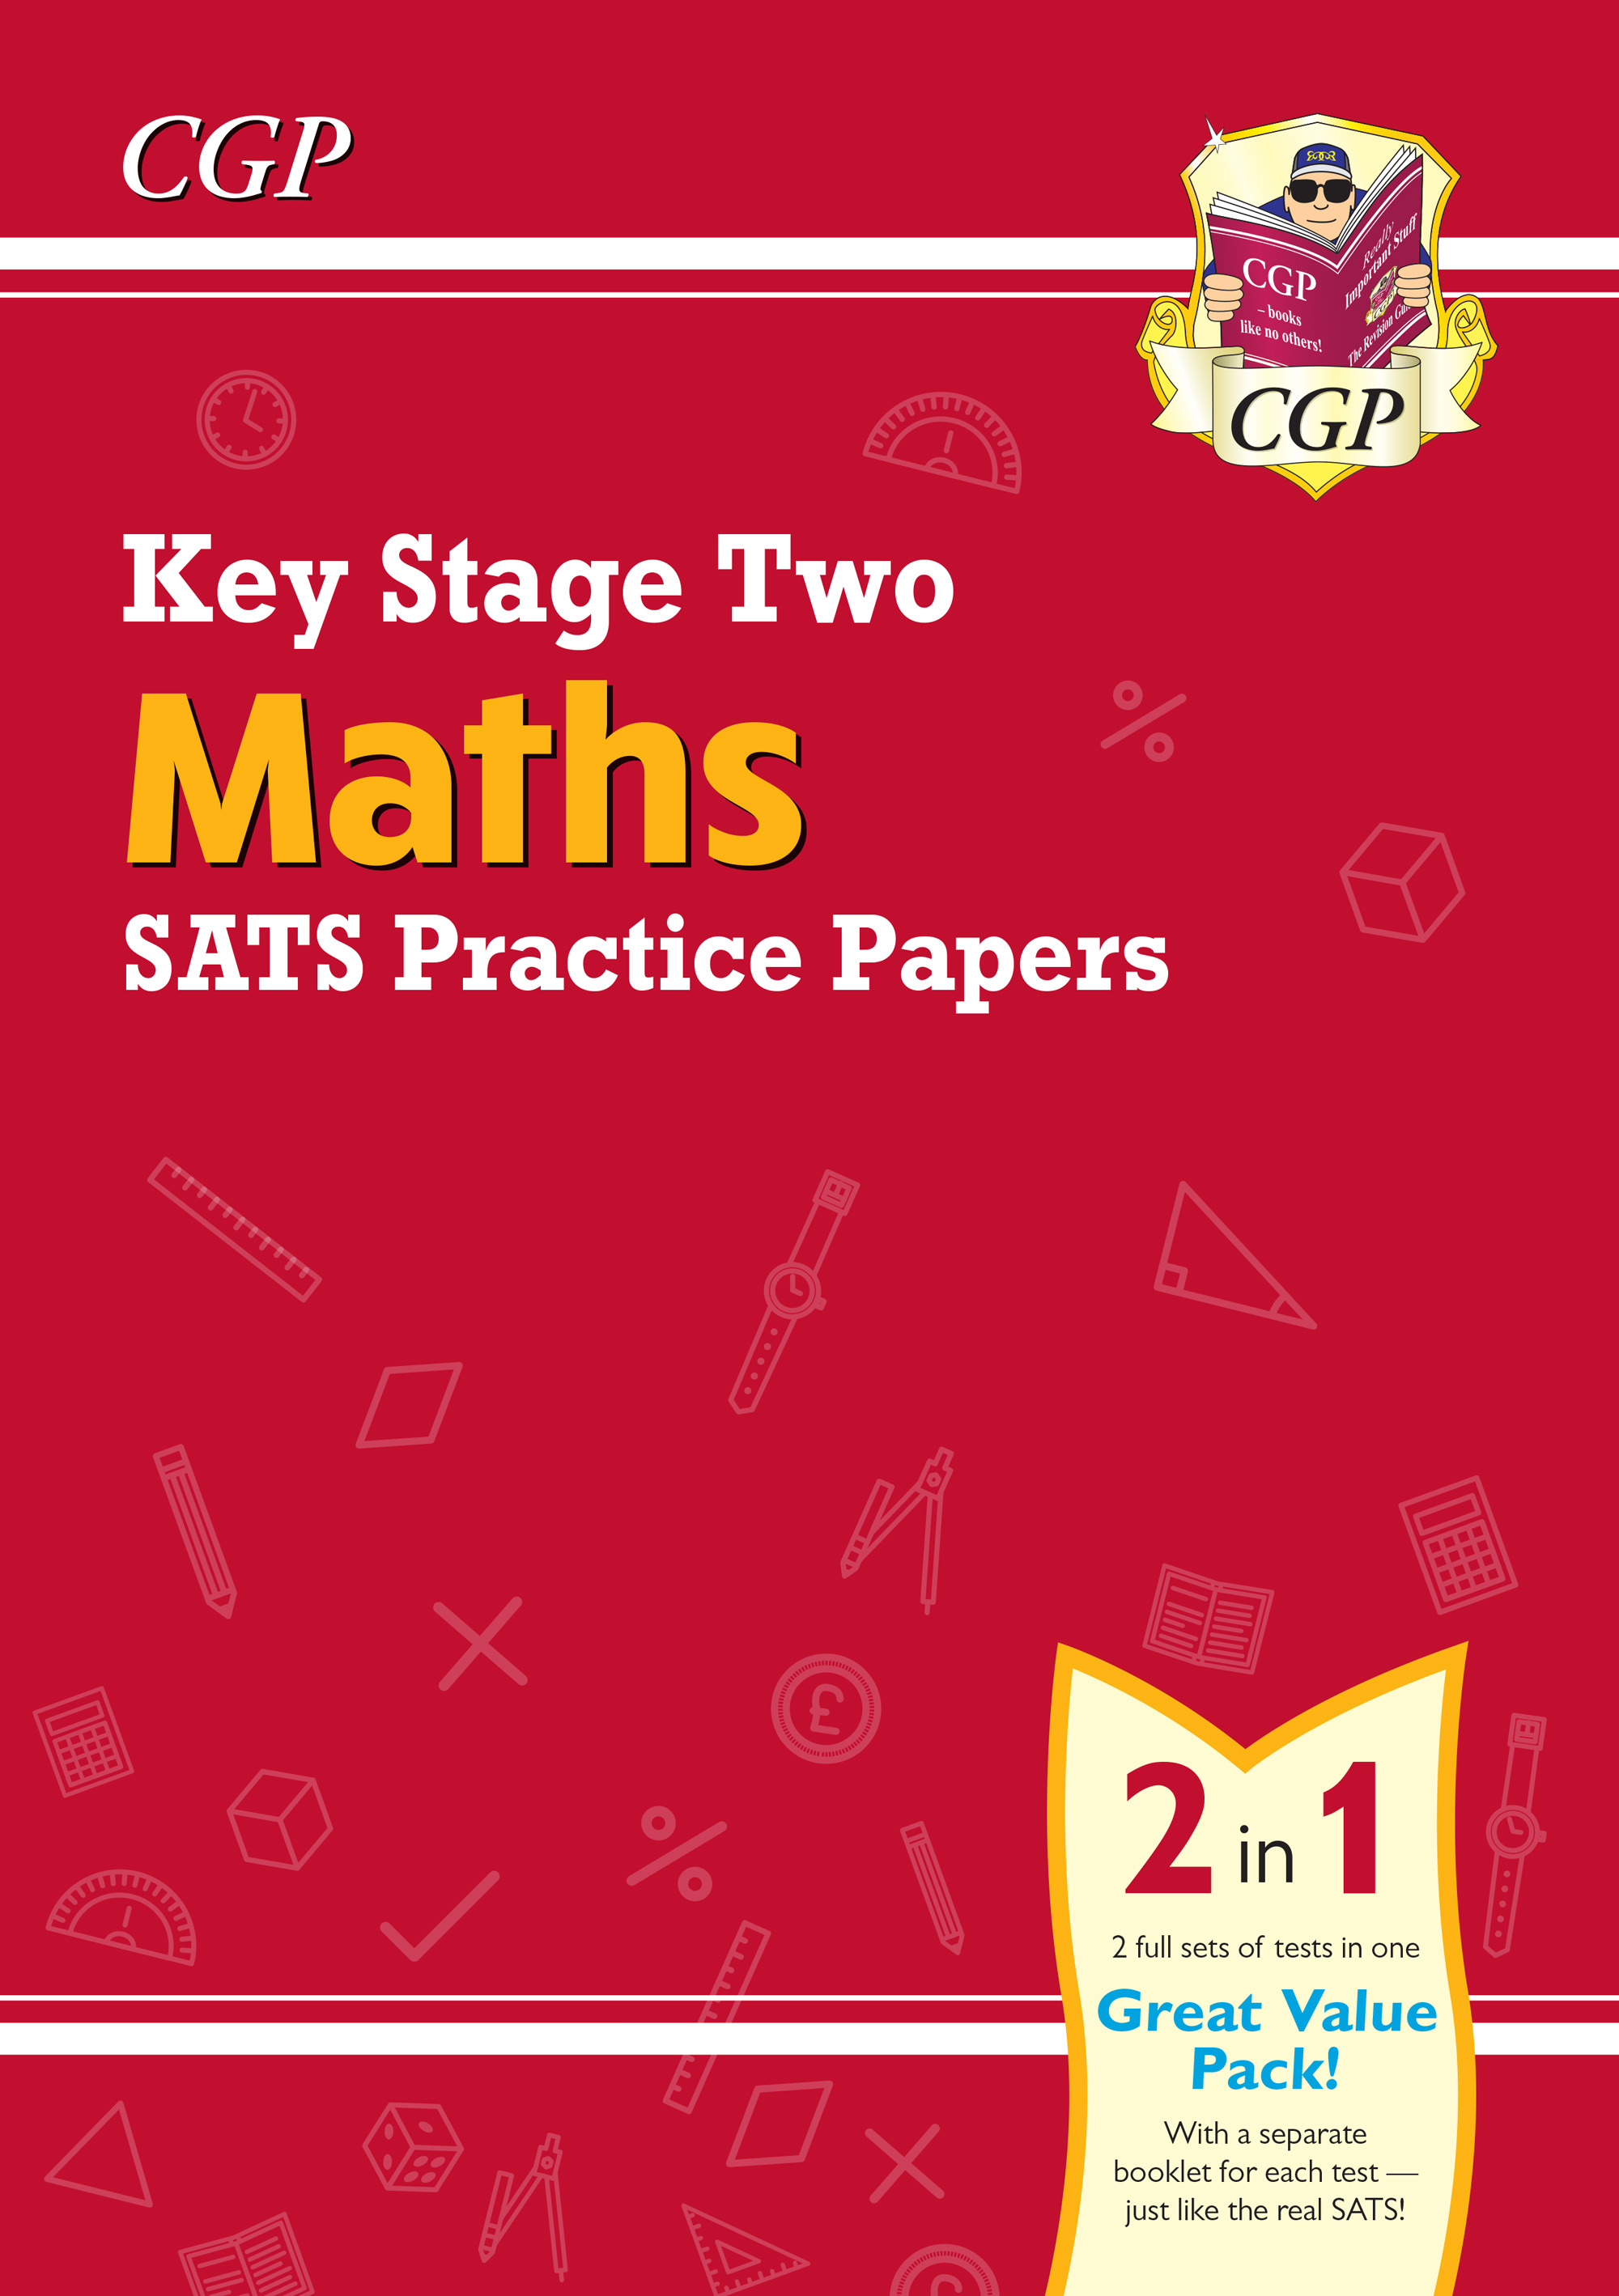 MHB27 - New KS2 Maths SATS Practice Papers (for the tests in 2021)